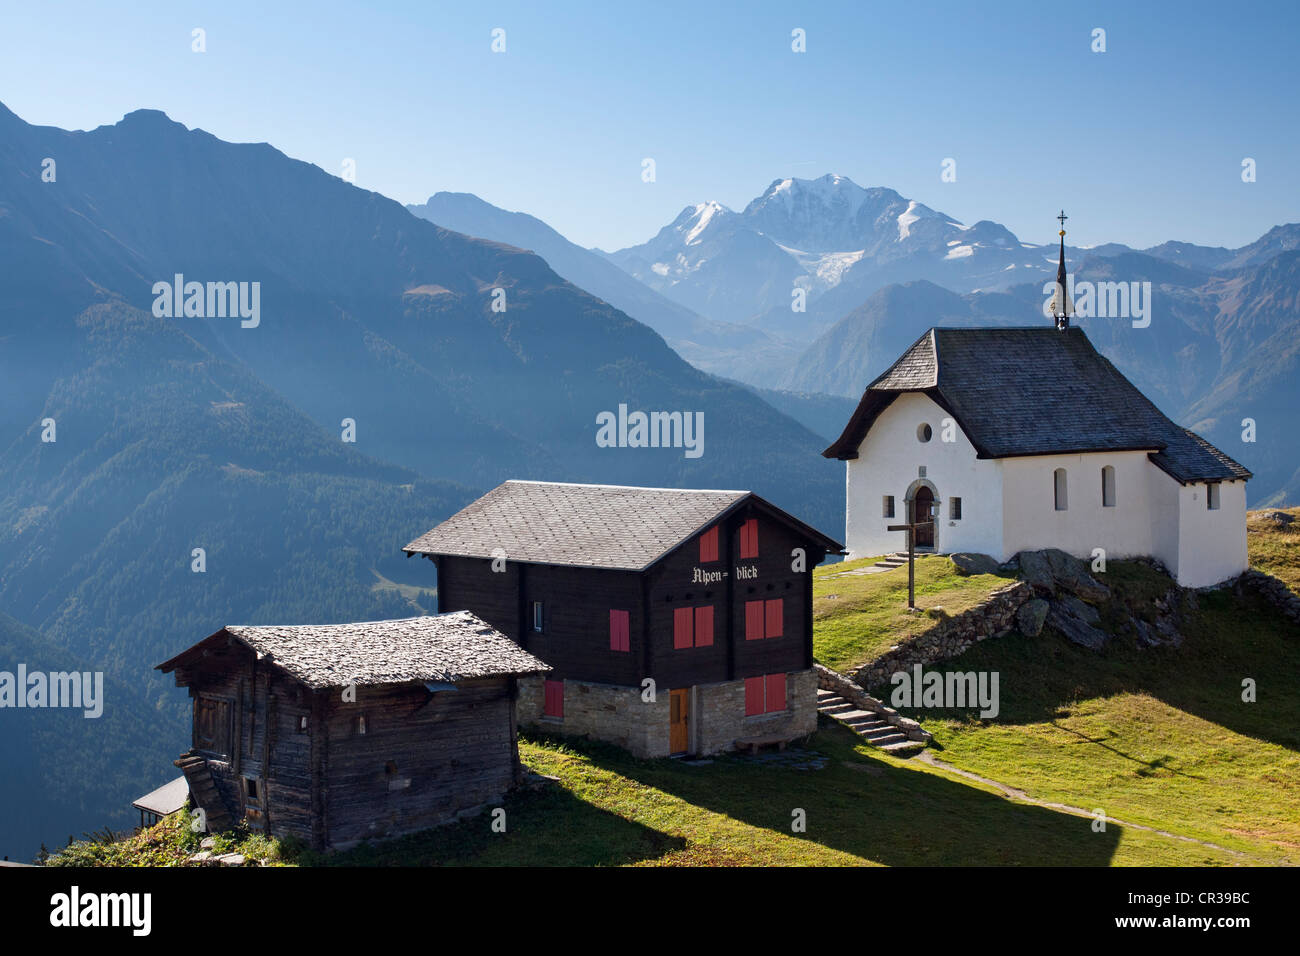 Lady of the Snows Chapel on Bettmeralp Mountain above the Rhone Valley, Canton of Valais, Switzerland, Europe, PublicGround - Stock Image